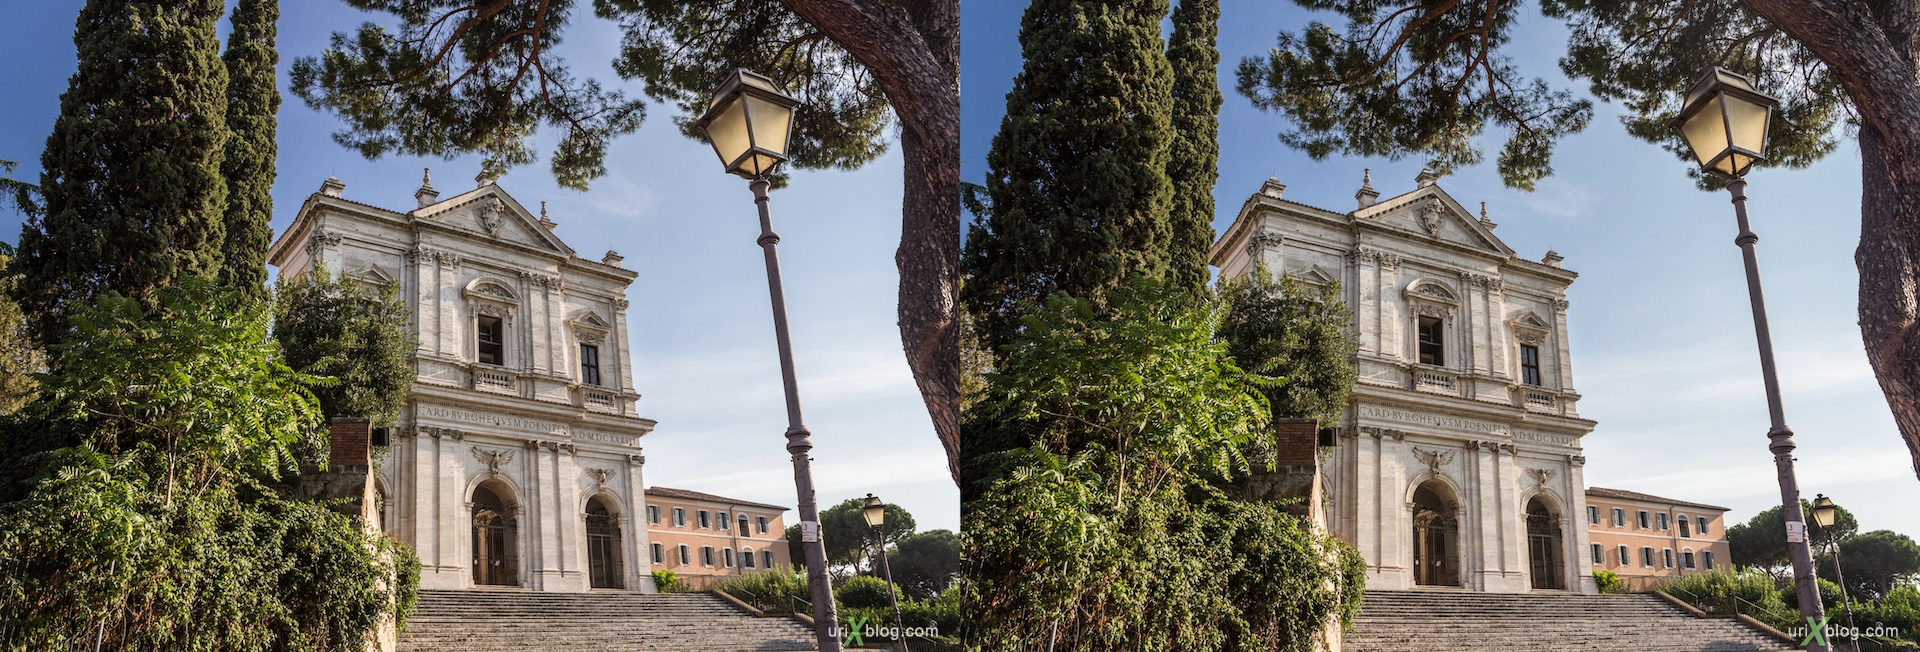 2012, church of San Gregorio Magno (Celio), Rome, Italy, cathedral, monastery, Christianity, Catholicism, 3D, stereo pair, cross-eyed, crossview, cross view stereo pair